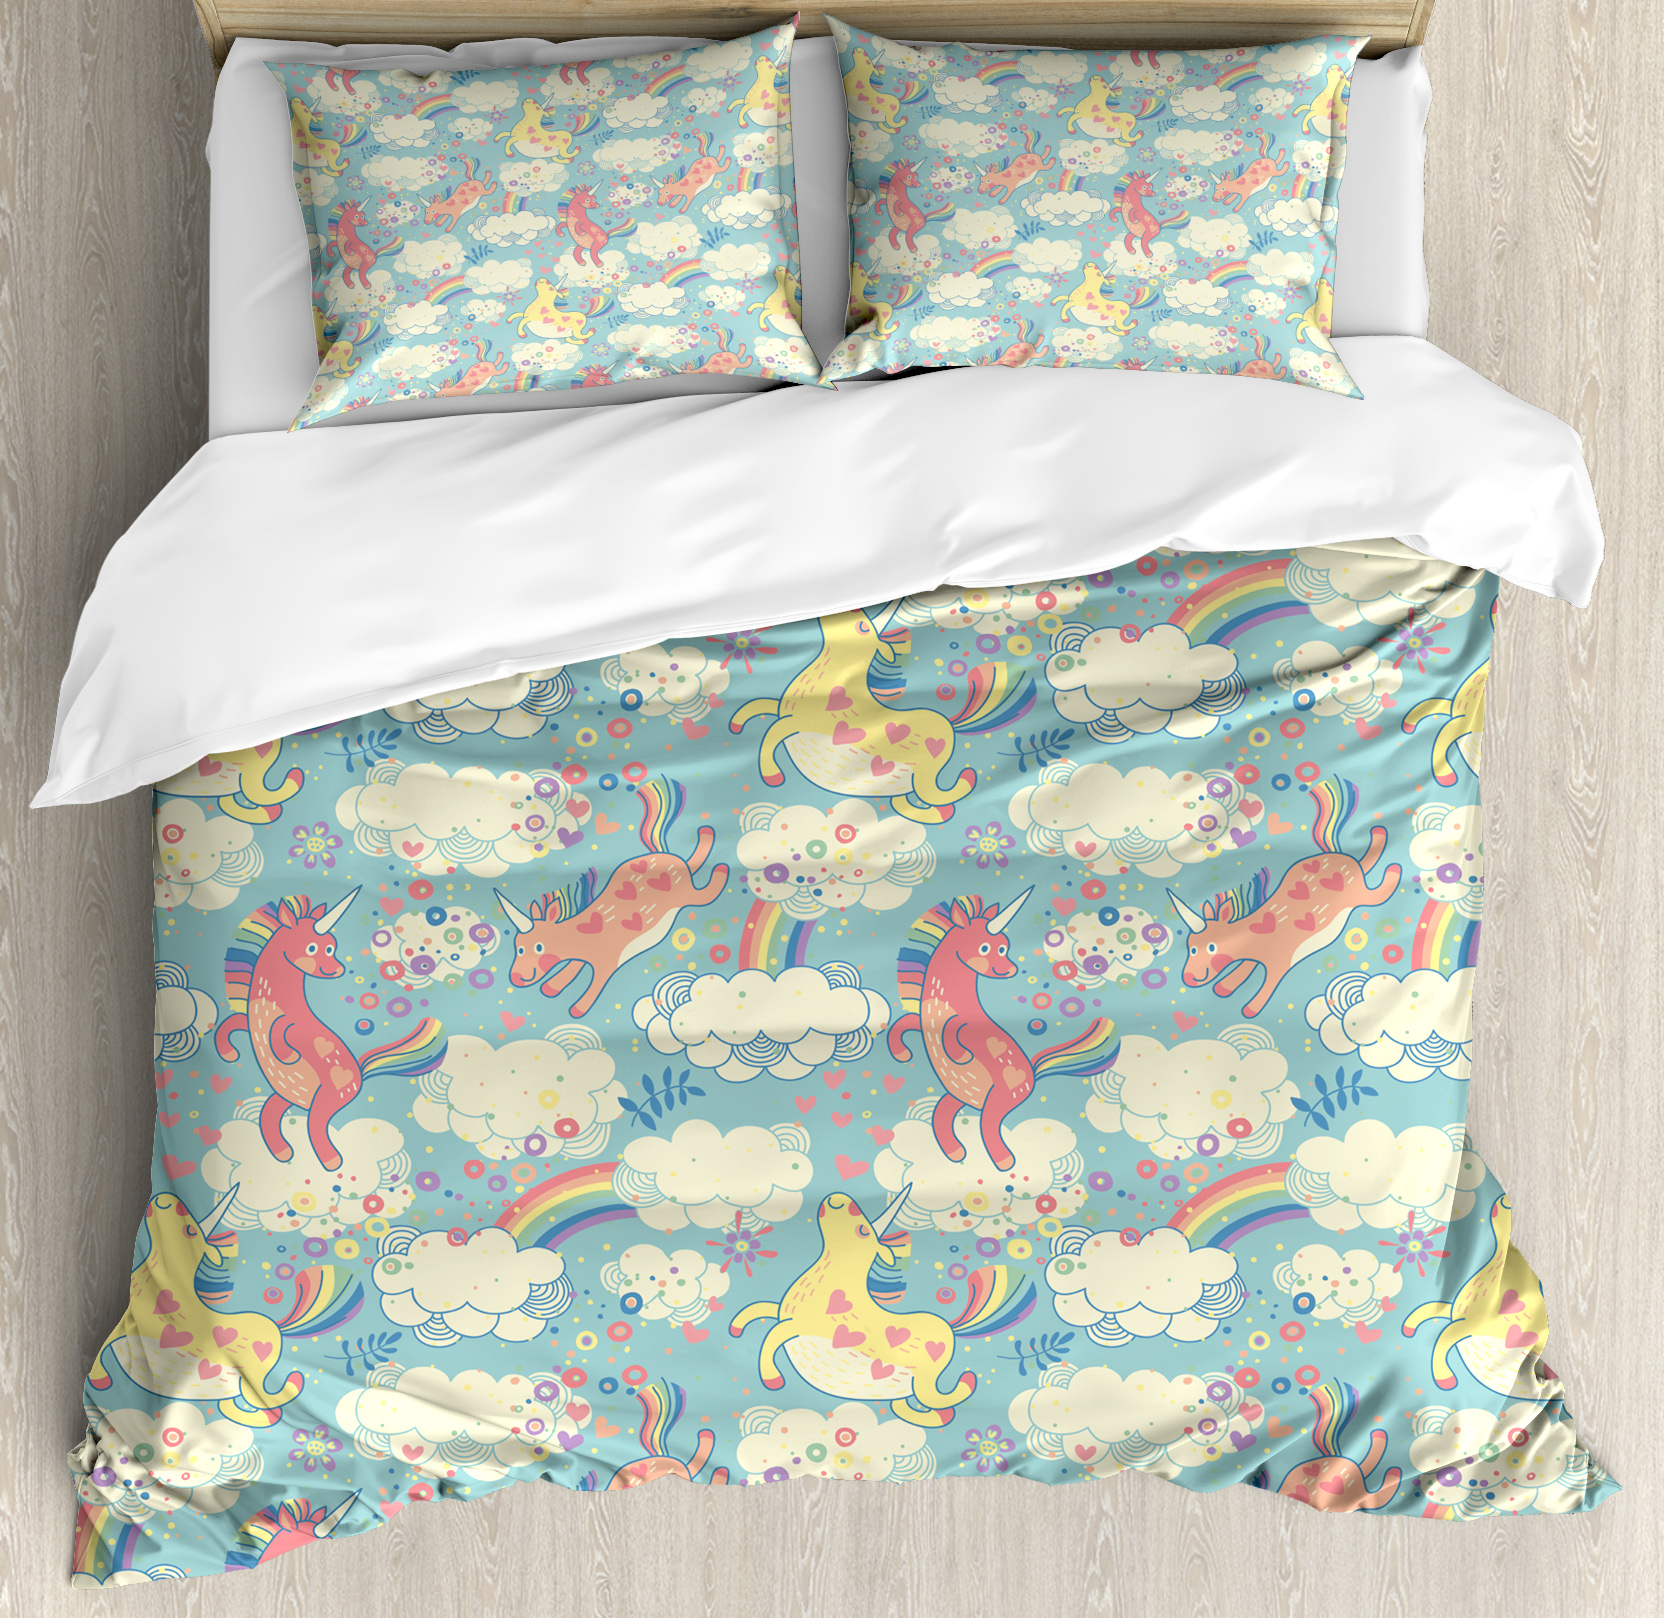 Pastel King Size Duvet Cover Set, Rainbow Unicorns Flying in Sky with Clouds Children... by Kozmos